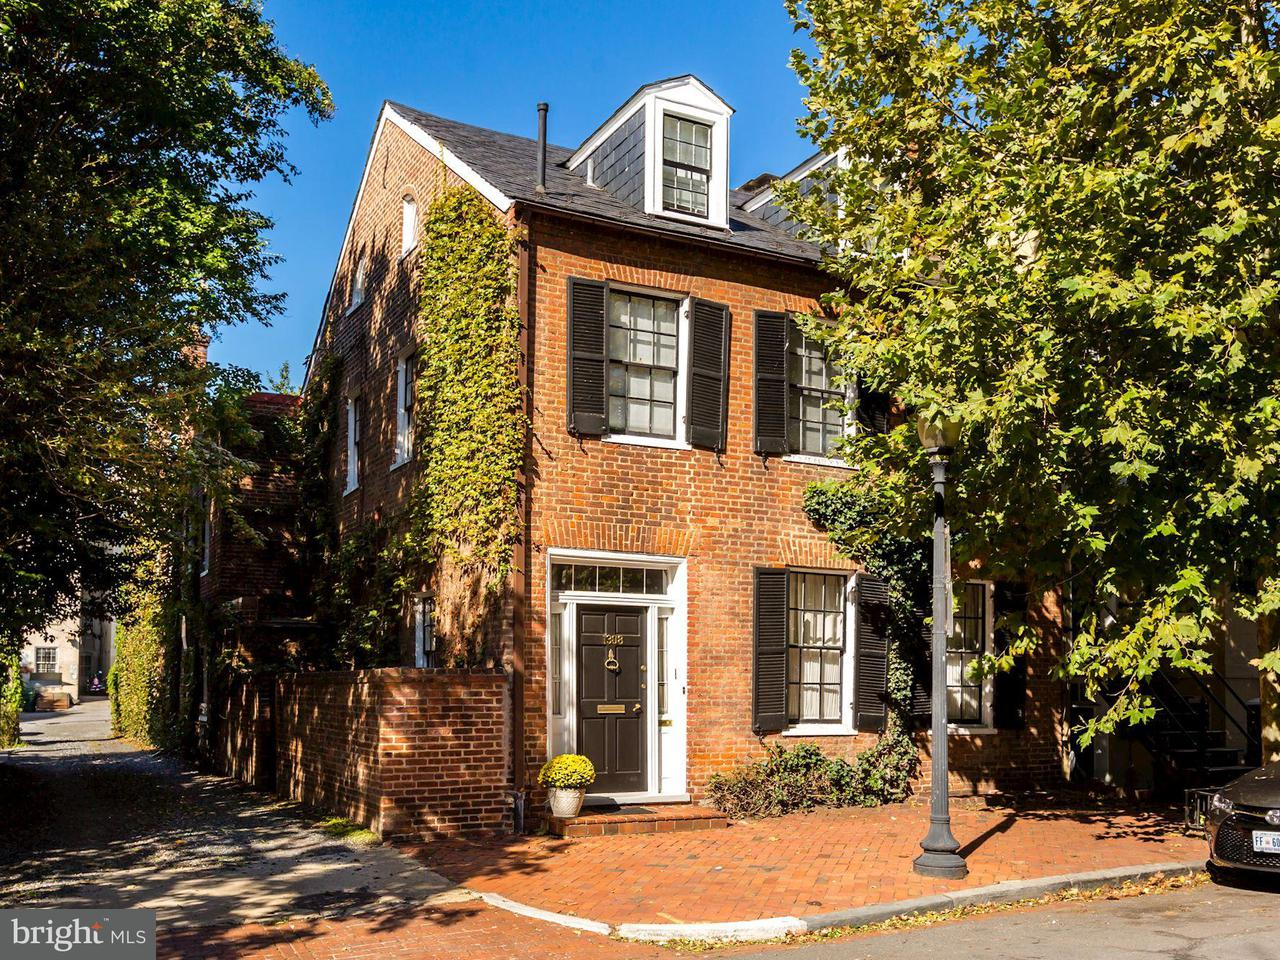 Townhouse for Sale at 1308 29TH ST NW 1308 29TH ST NW Washington, District Of Columbia 20007 United States